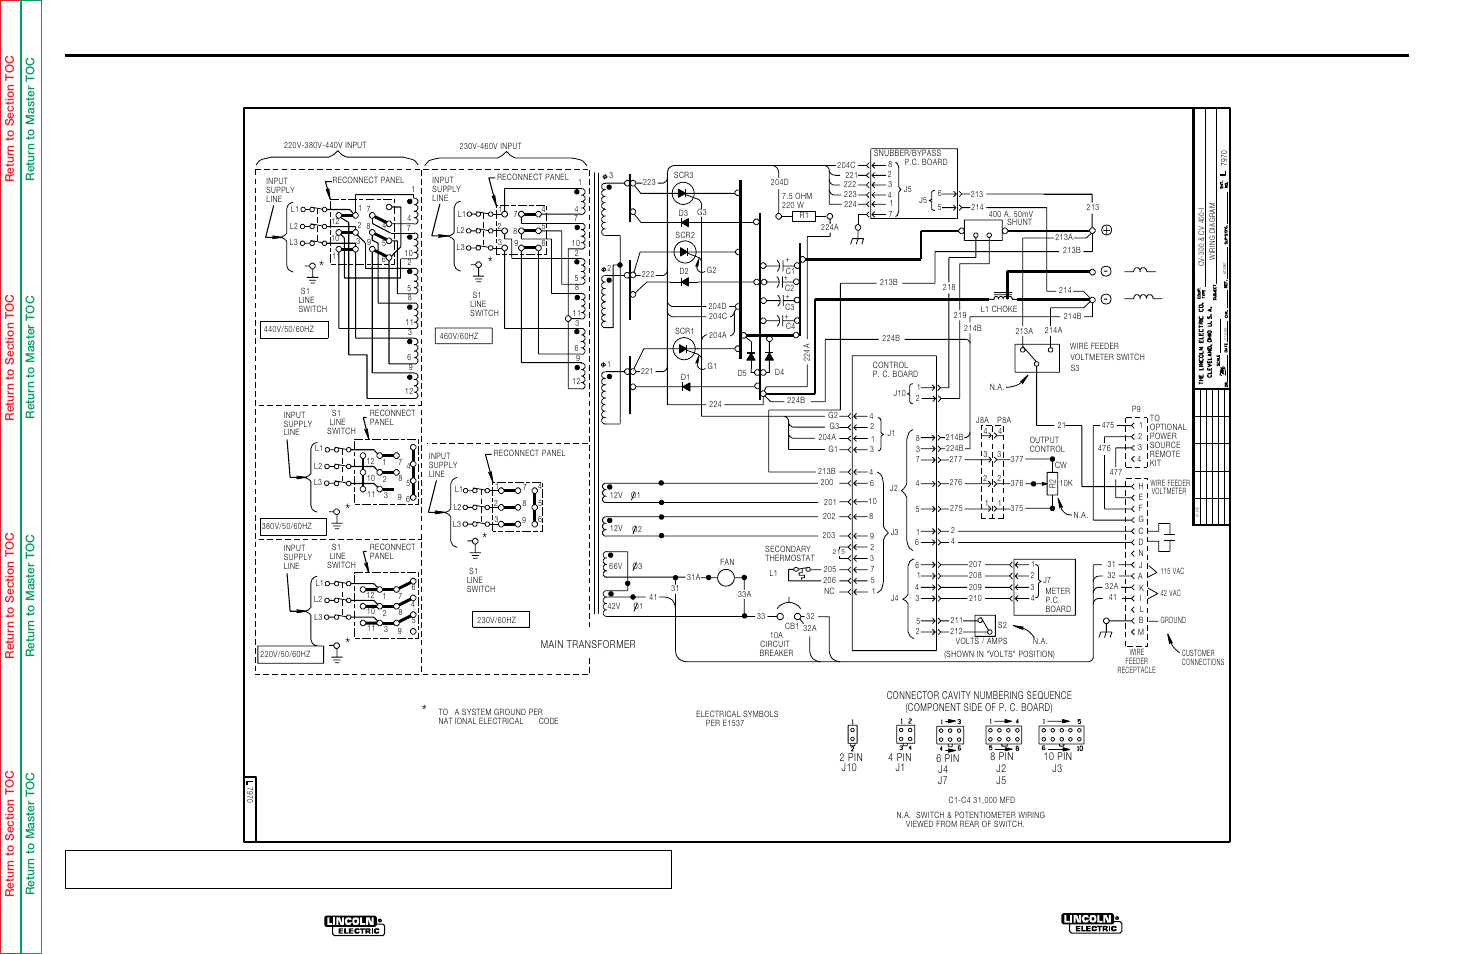 Electrical Diagrams Wiring Diagram For Code